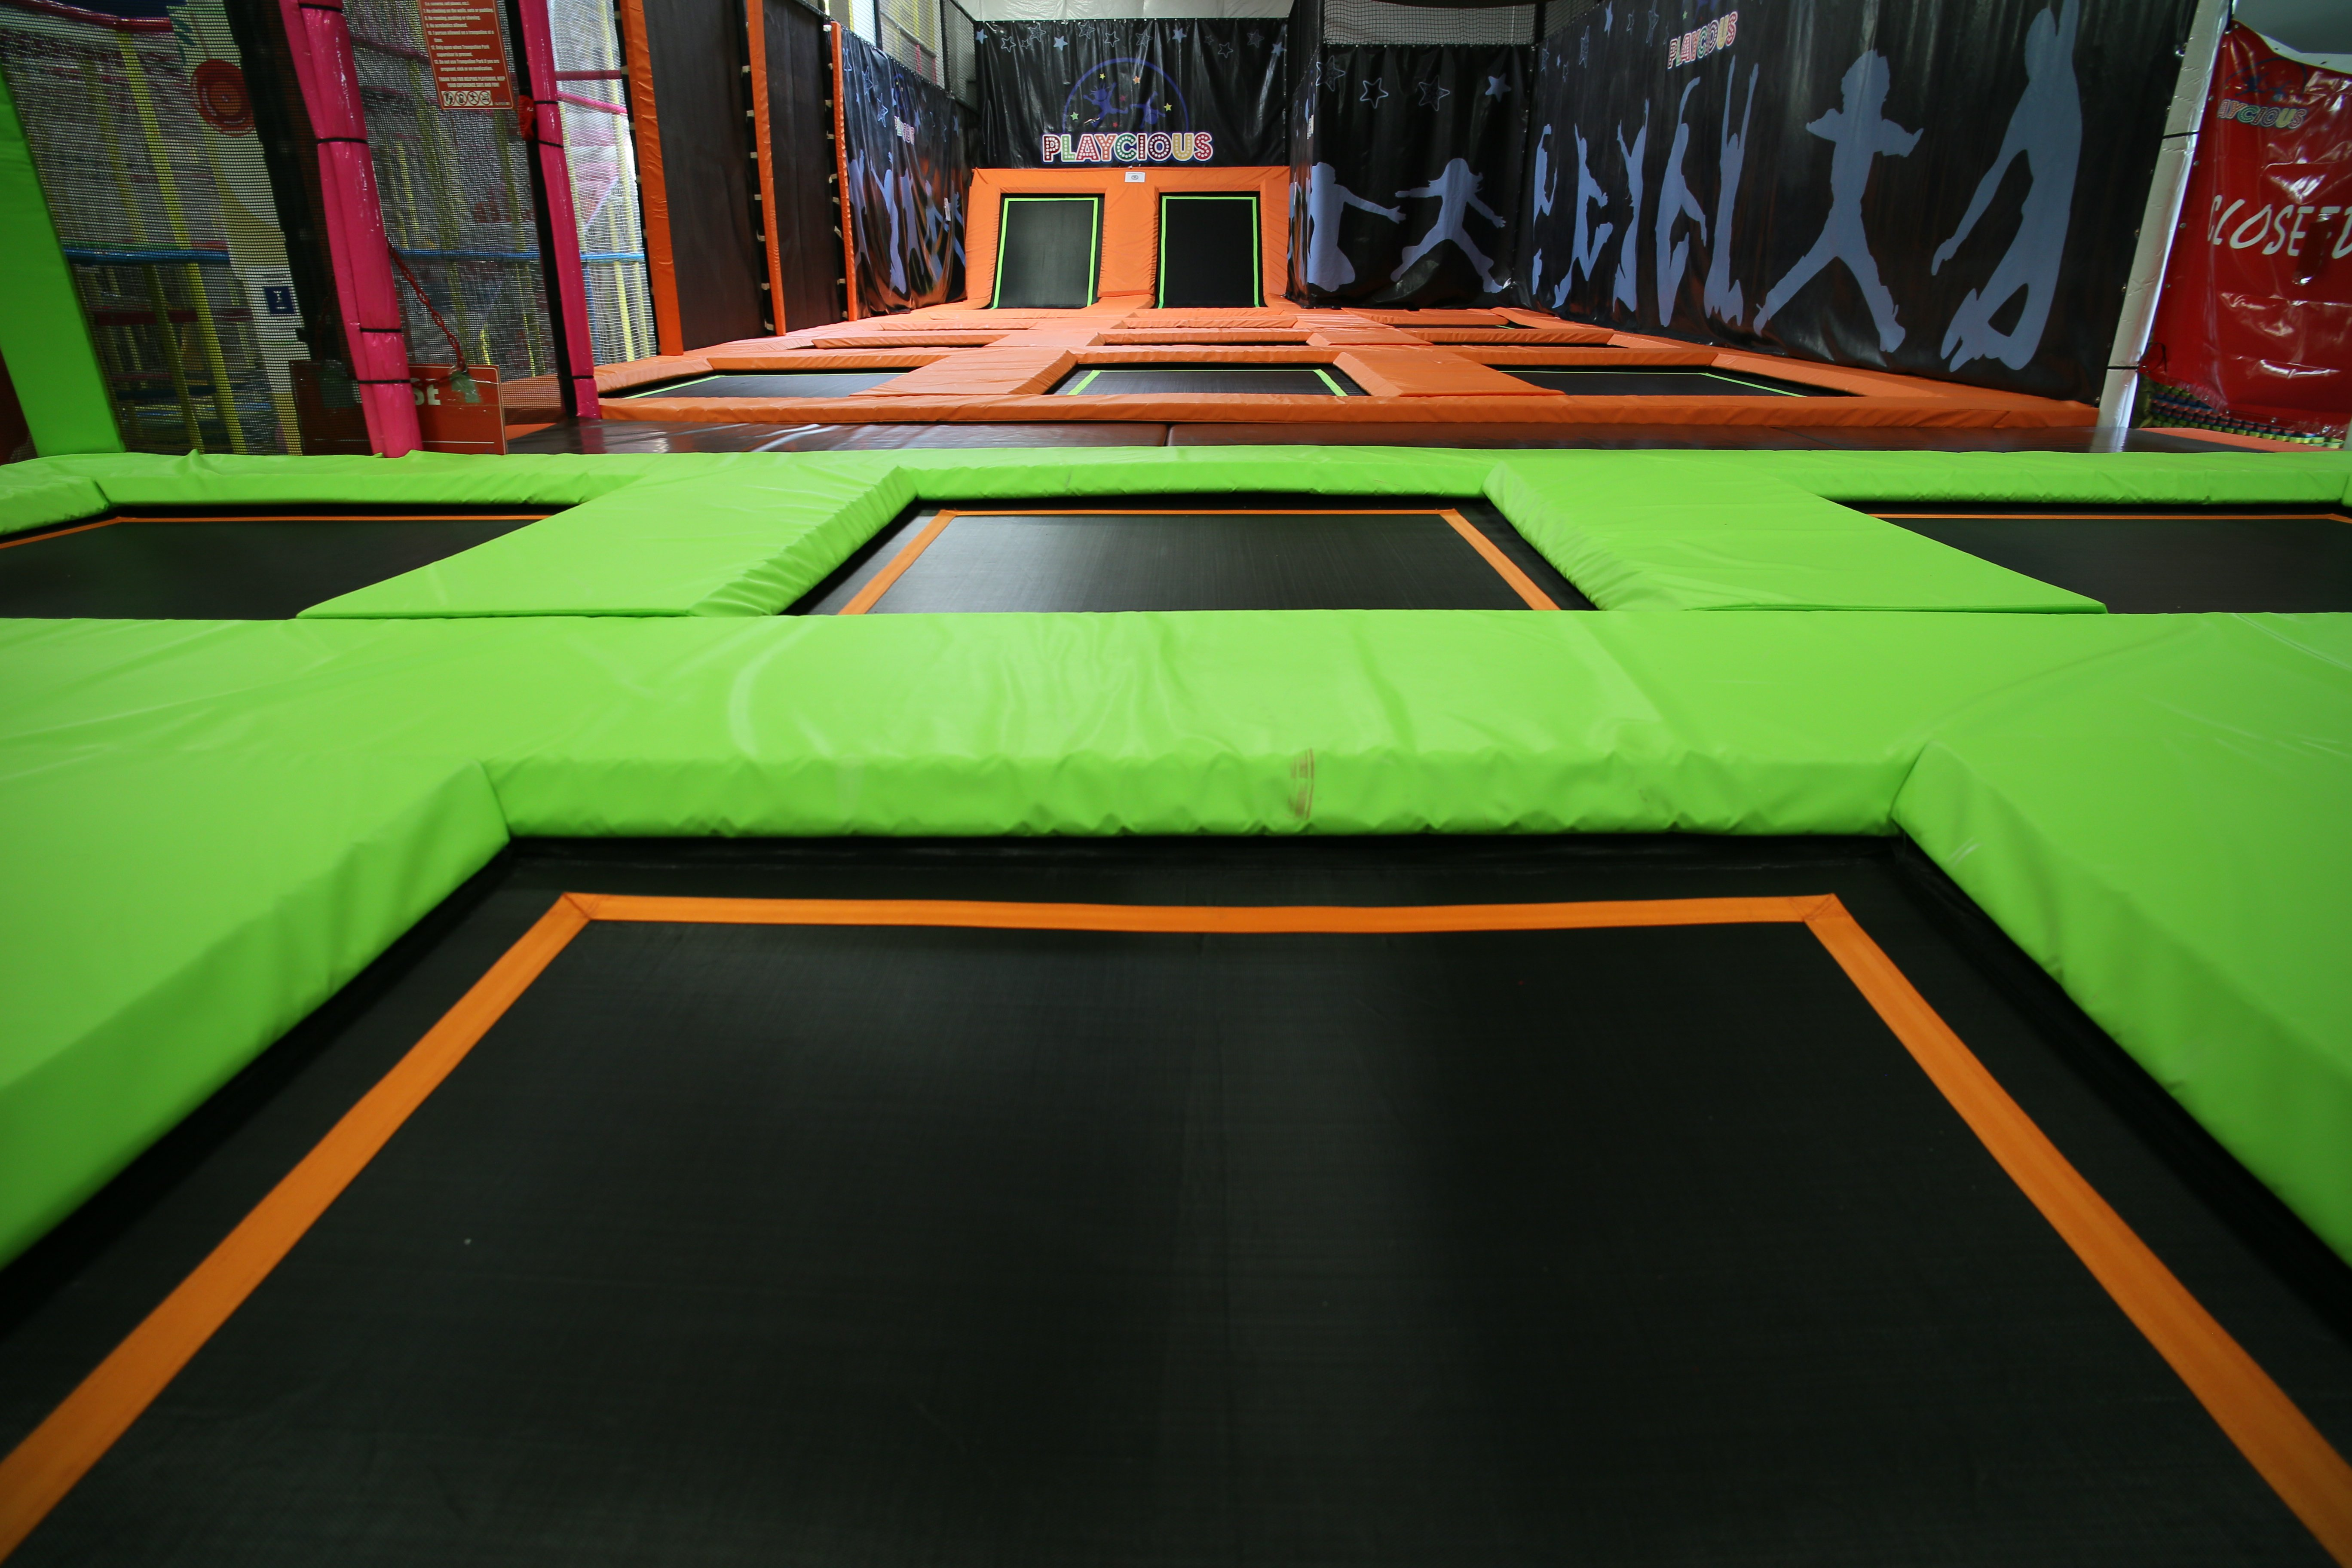 Trampoline Park - Playcious Kids Indoor Trampoline